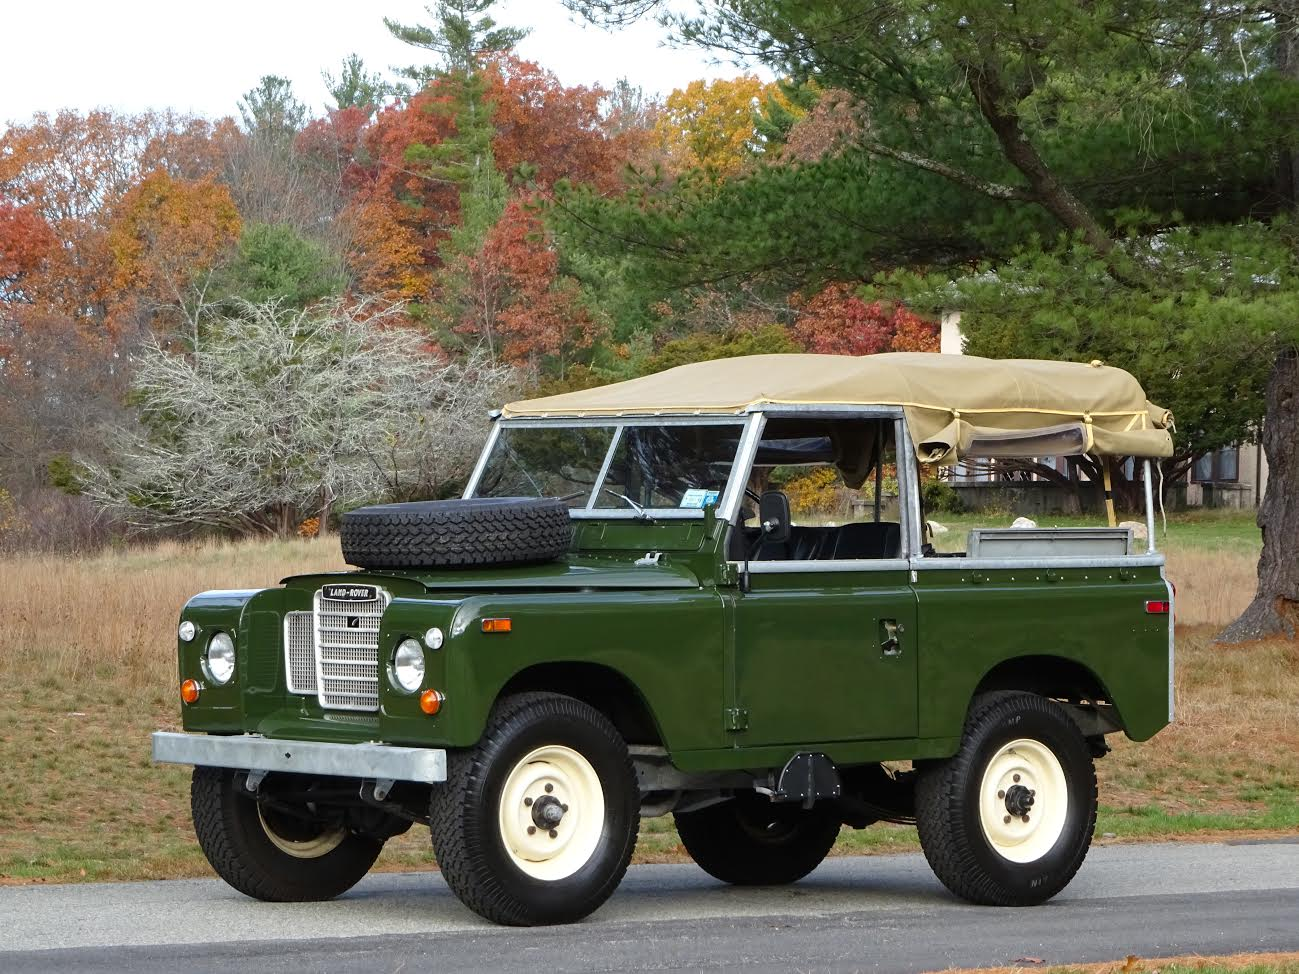 Roof Rack Ladder >> 1974 Land Rover Series III 88 | Copley Motorcars